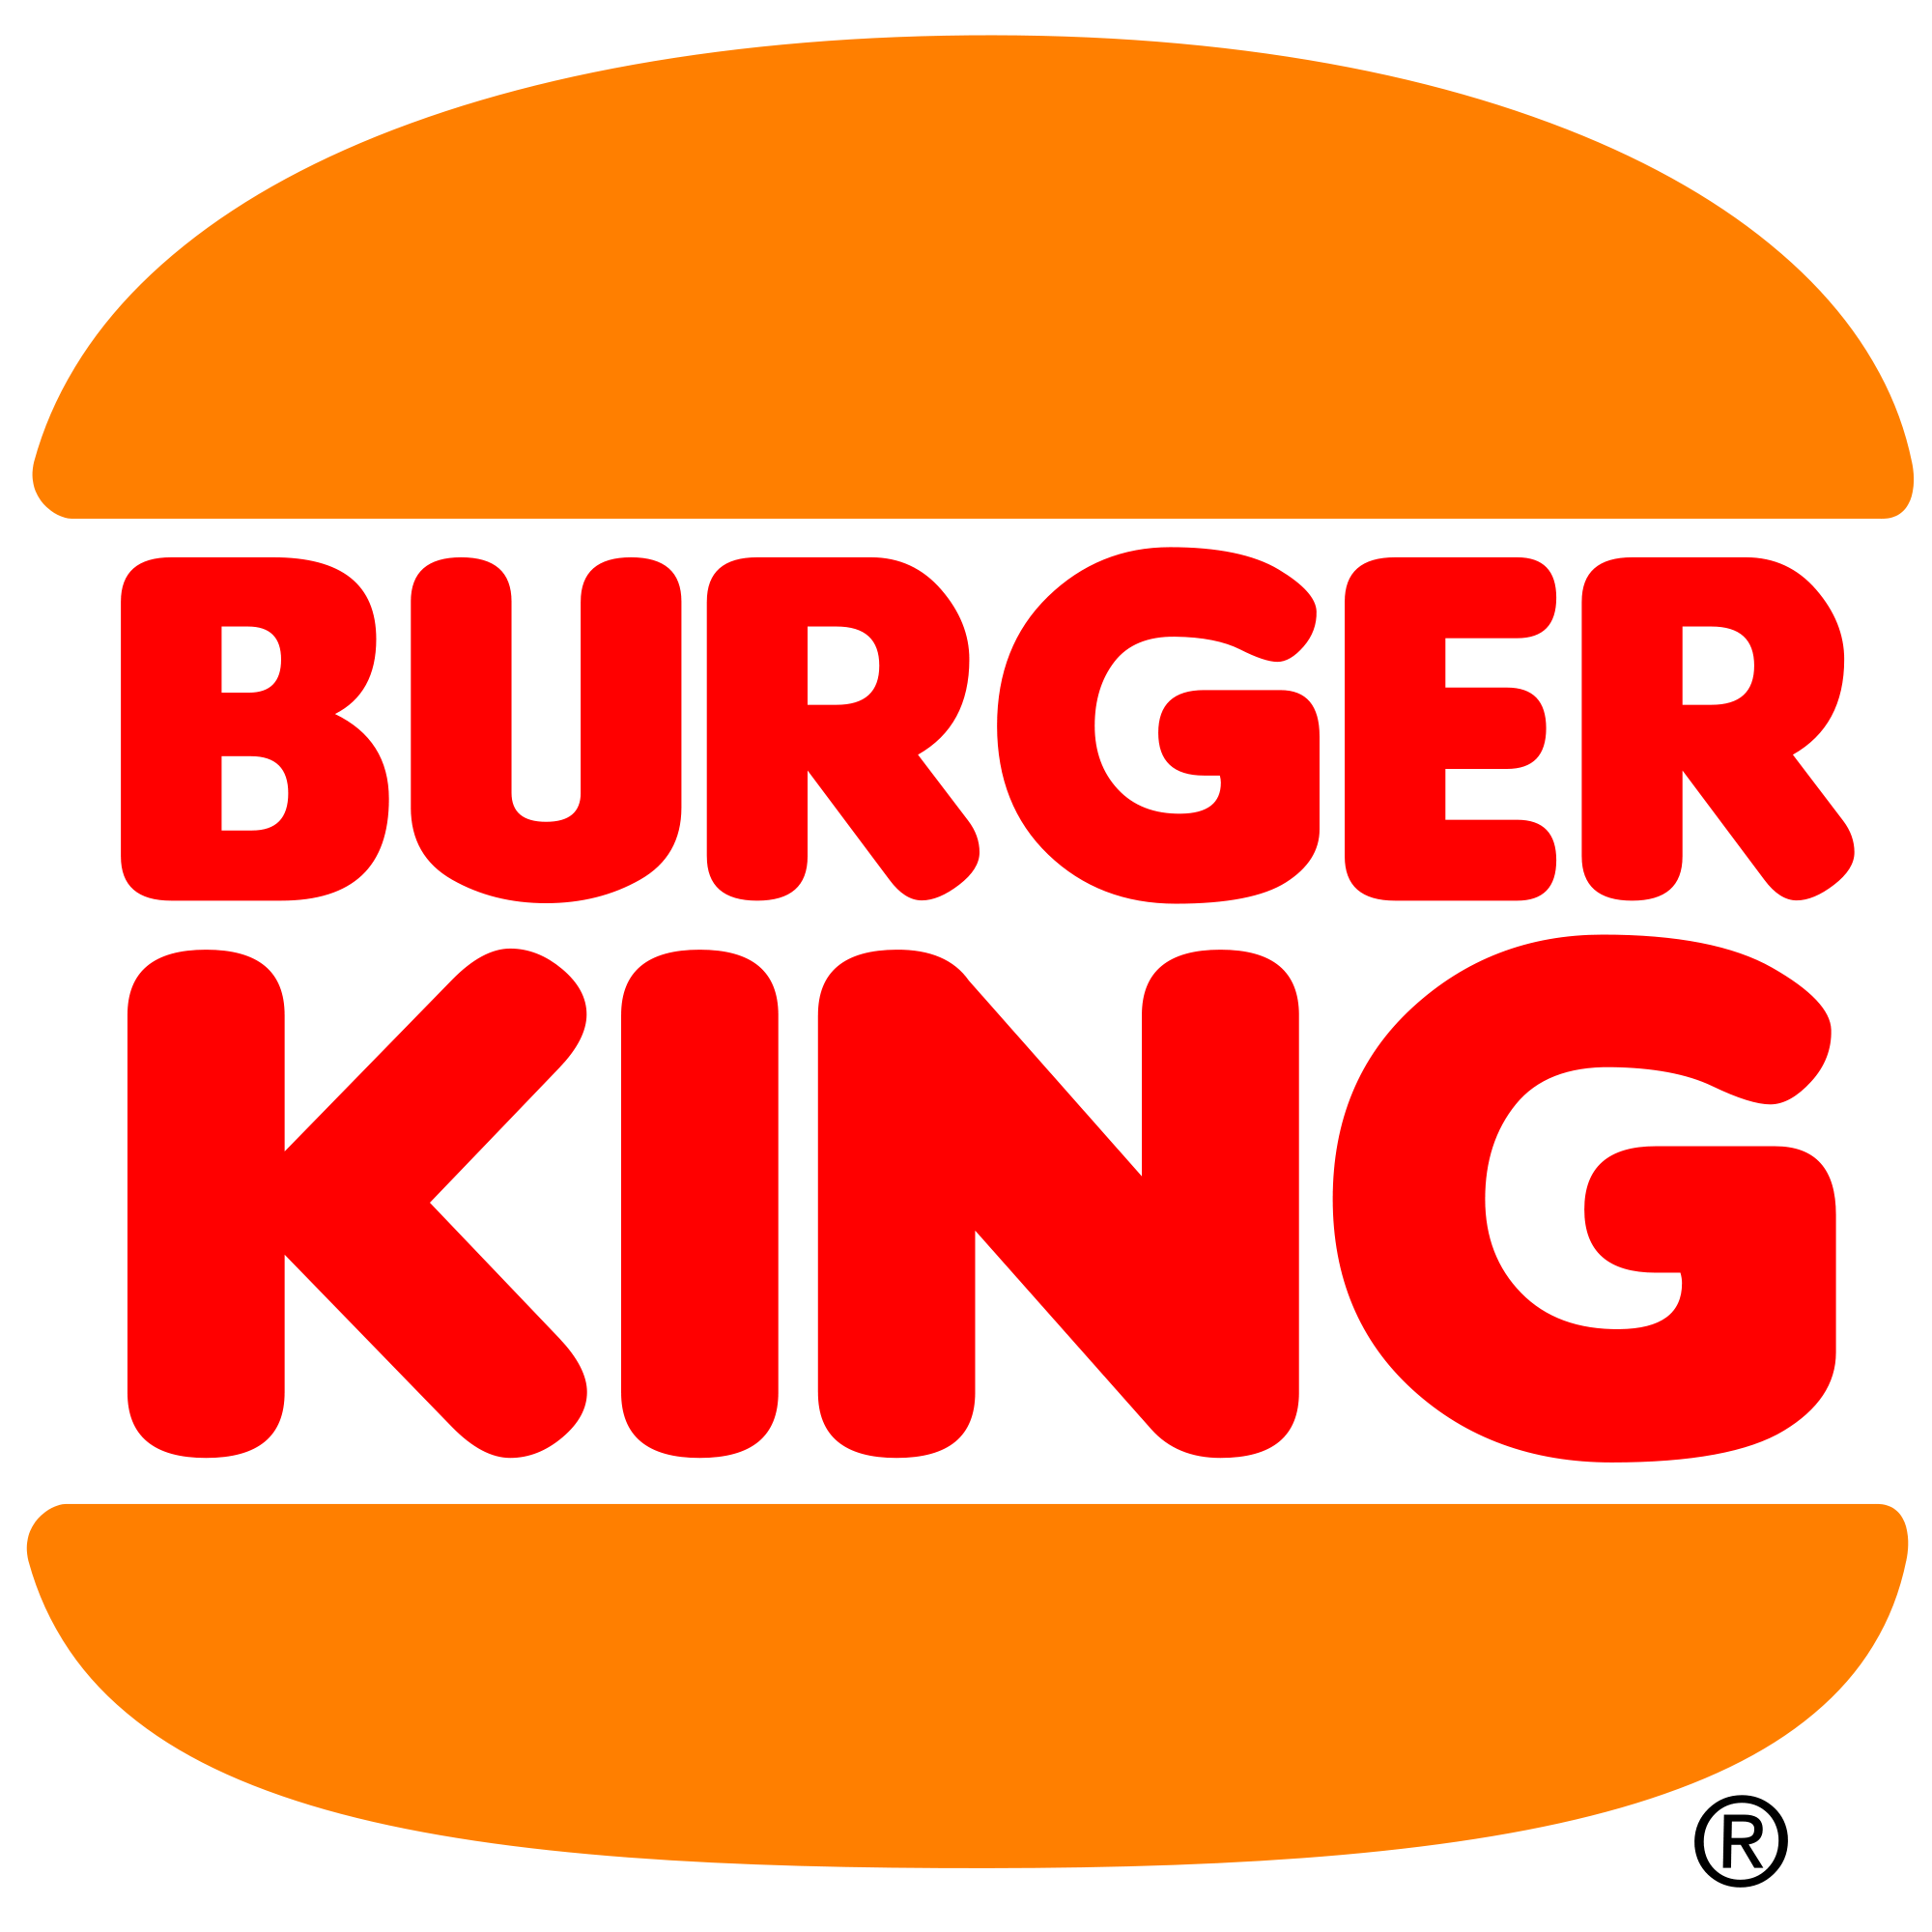 Burger King Logo - Image - Burger king logo 2.png | Fighters of Lapis Wiki | FANDOM ...